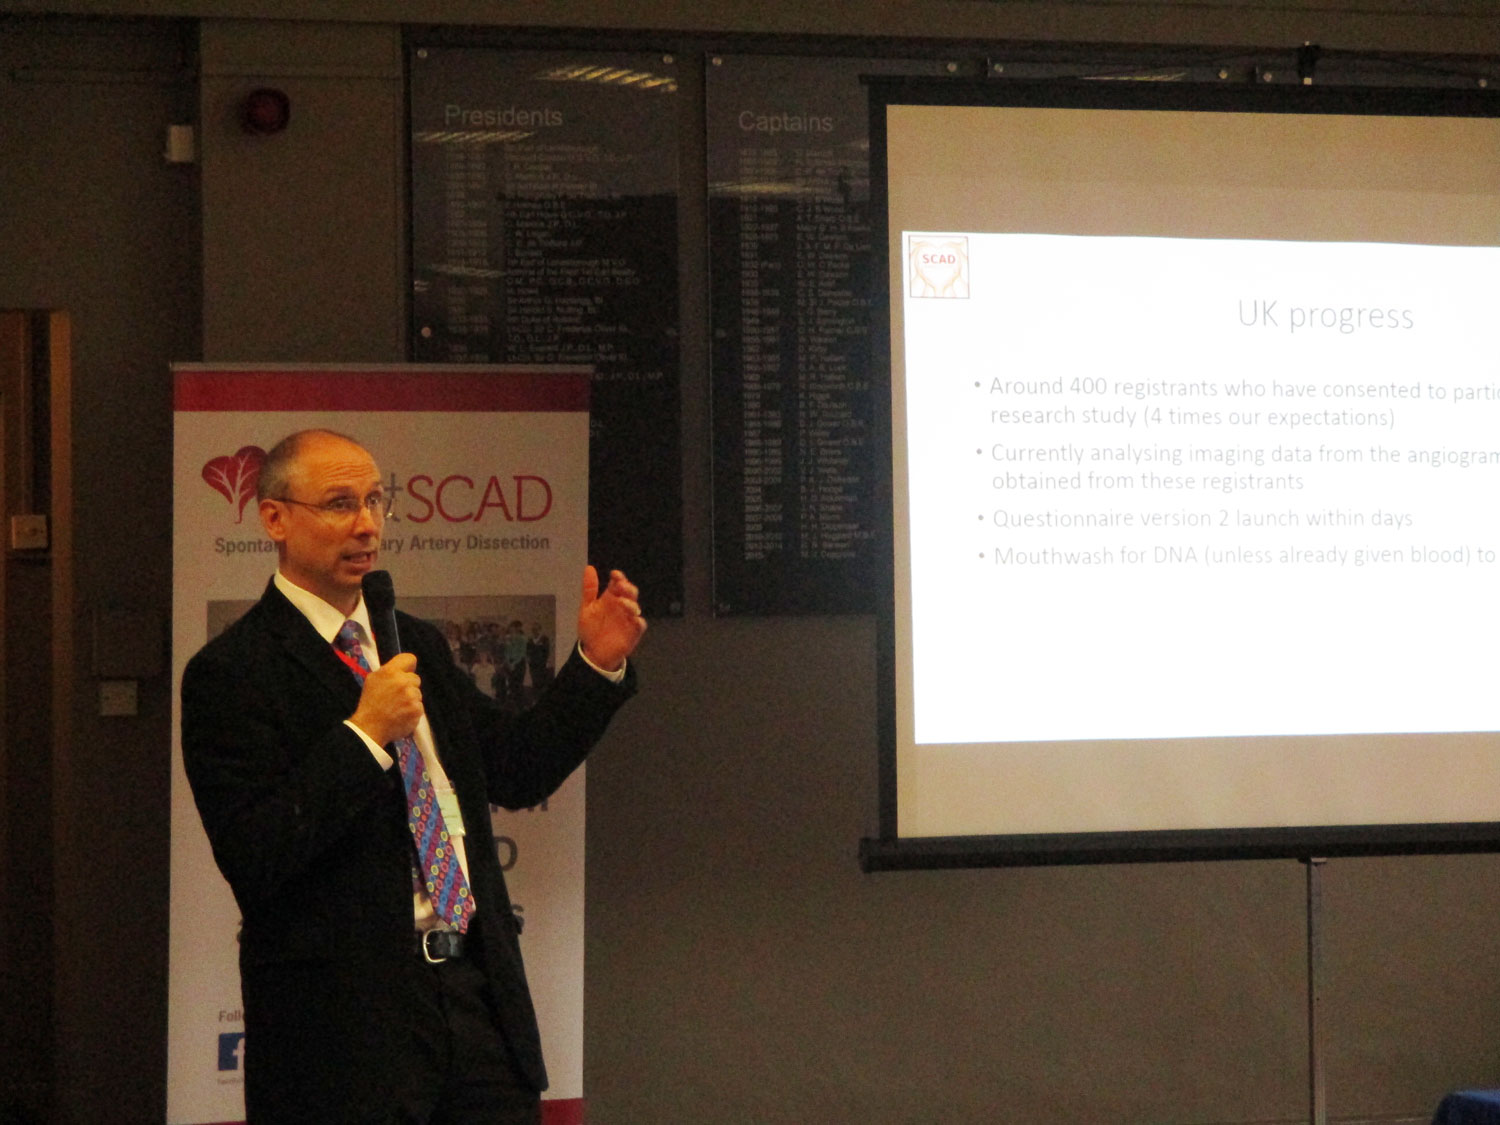 Dr Adlam updating delegates on the research